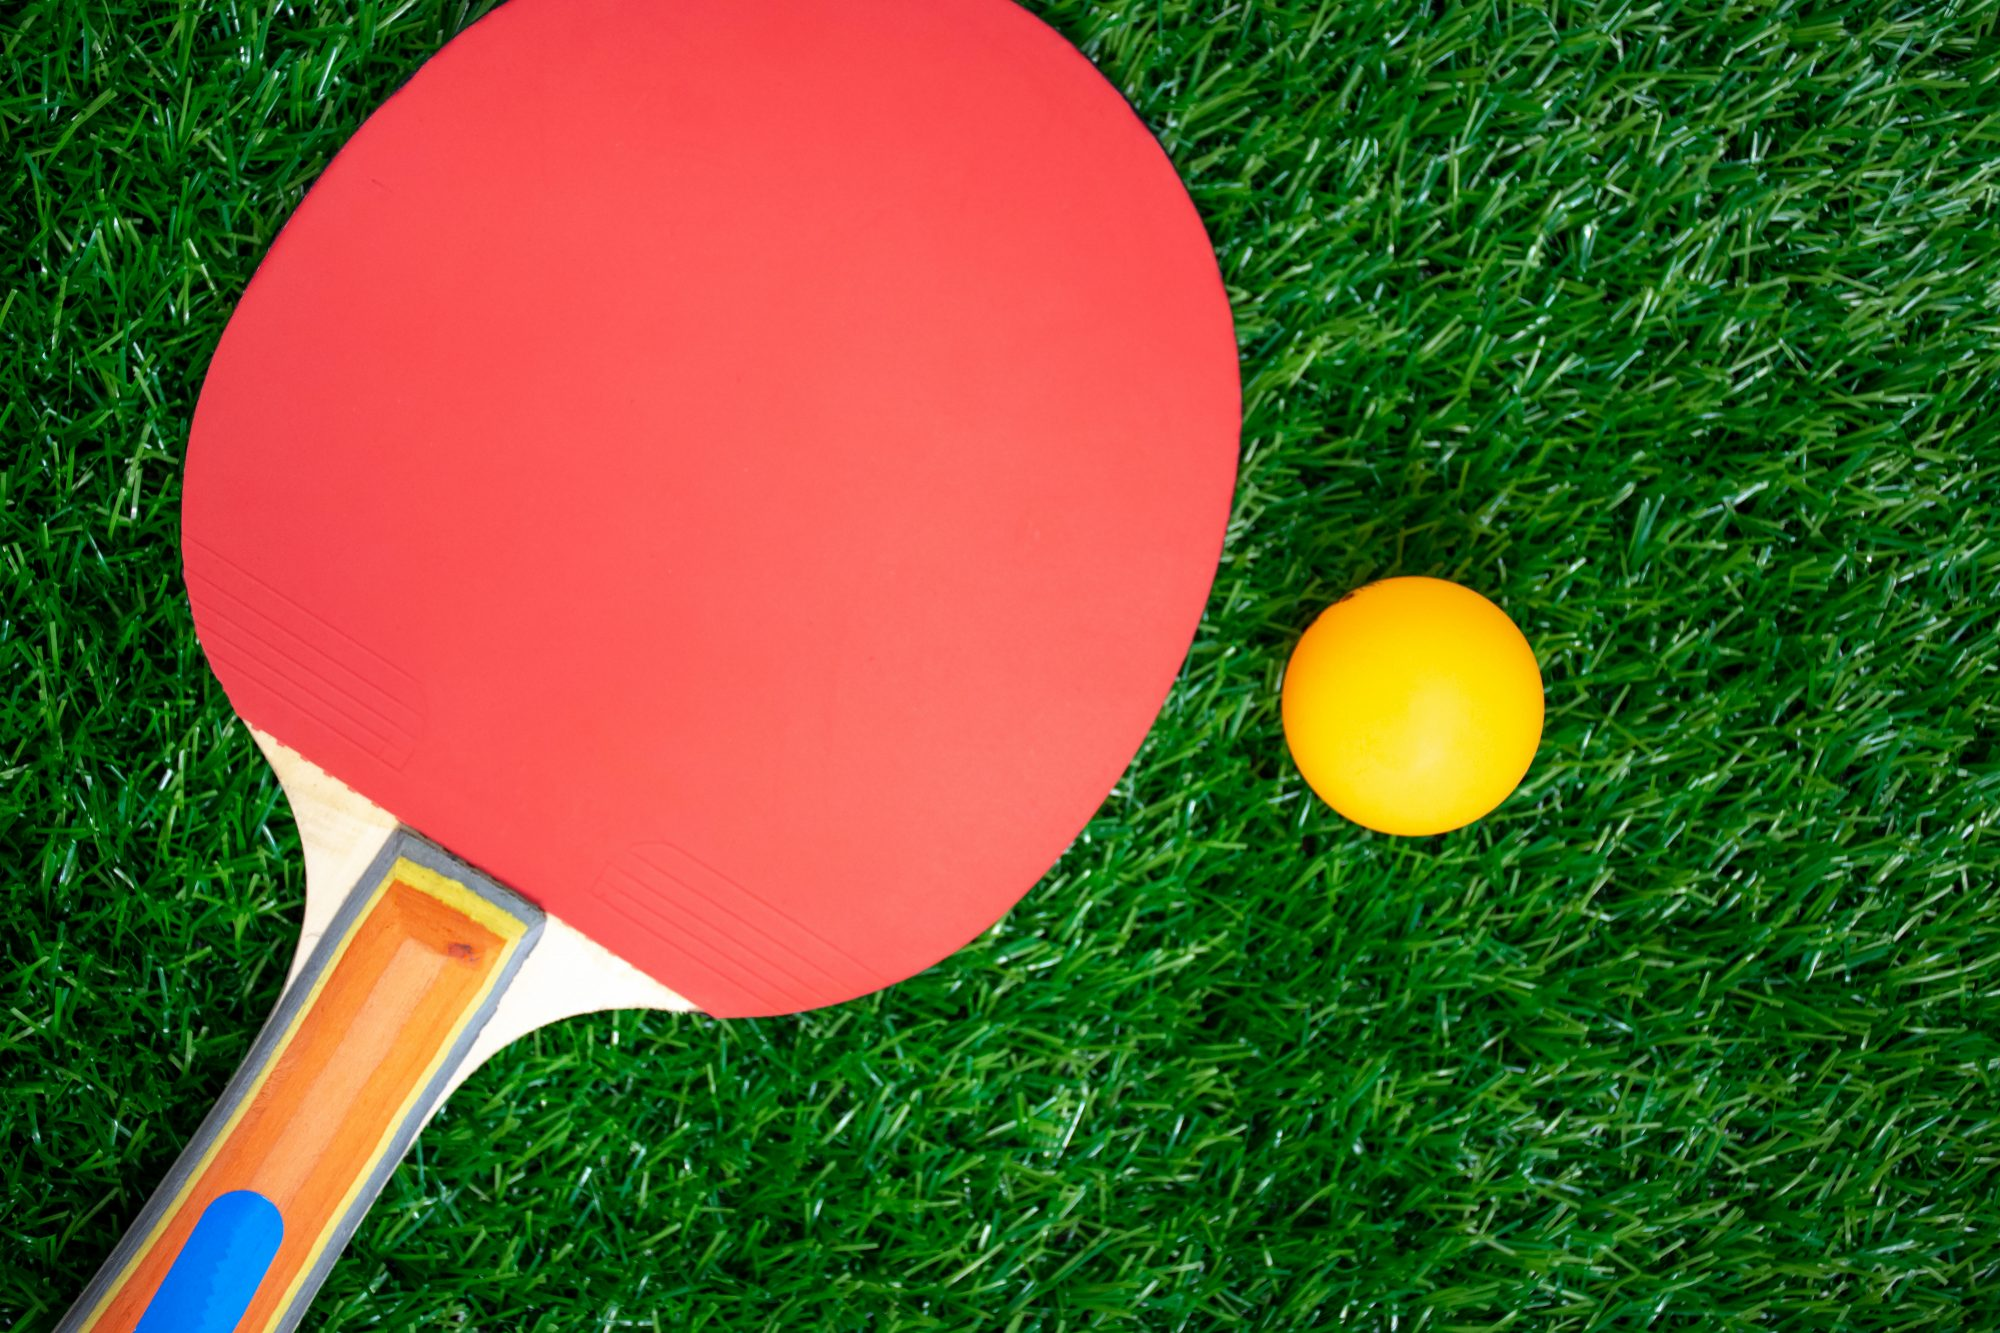 Table tennis racket with orange balls,Ping-Pong paddles on greensward